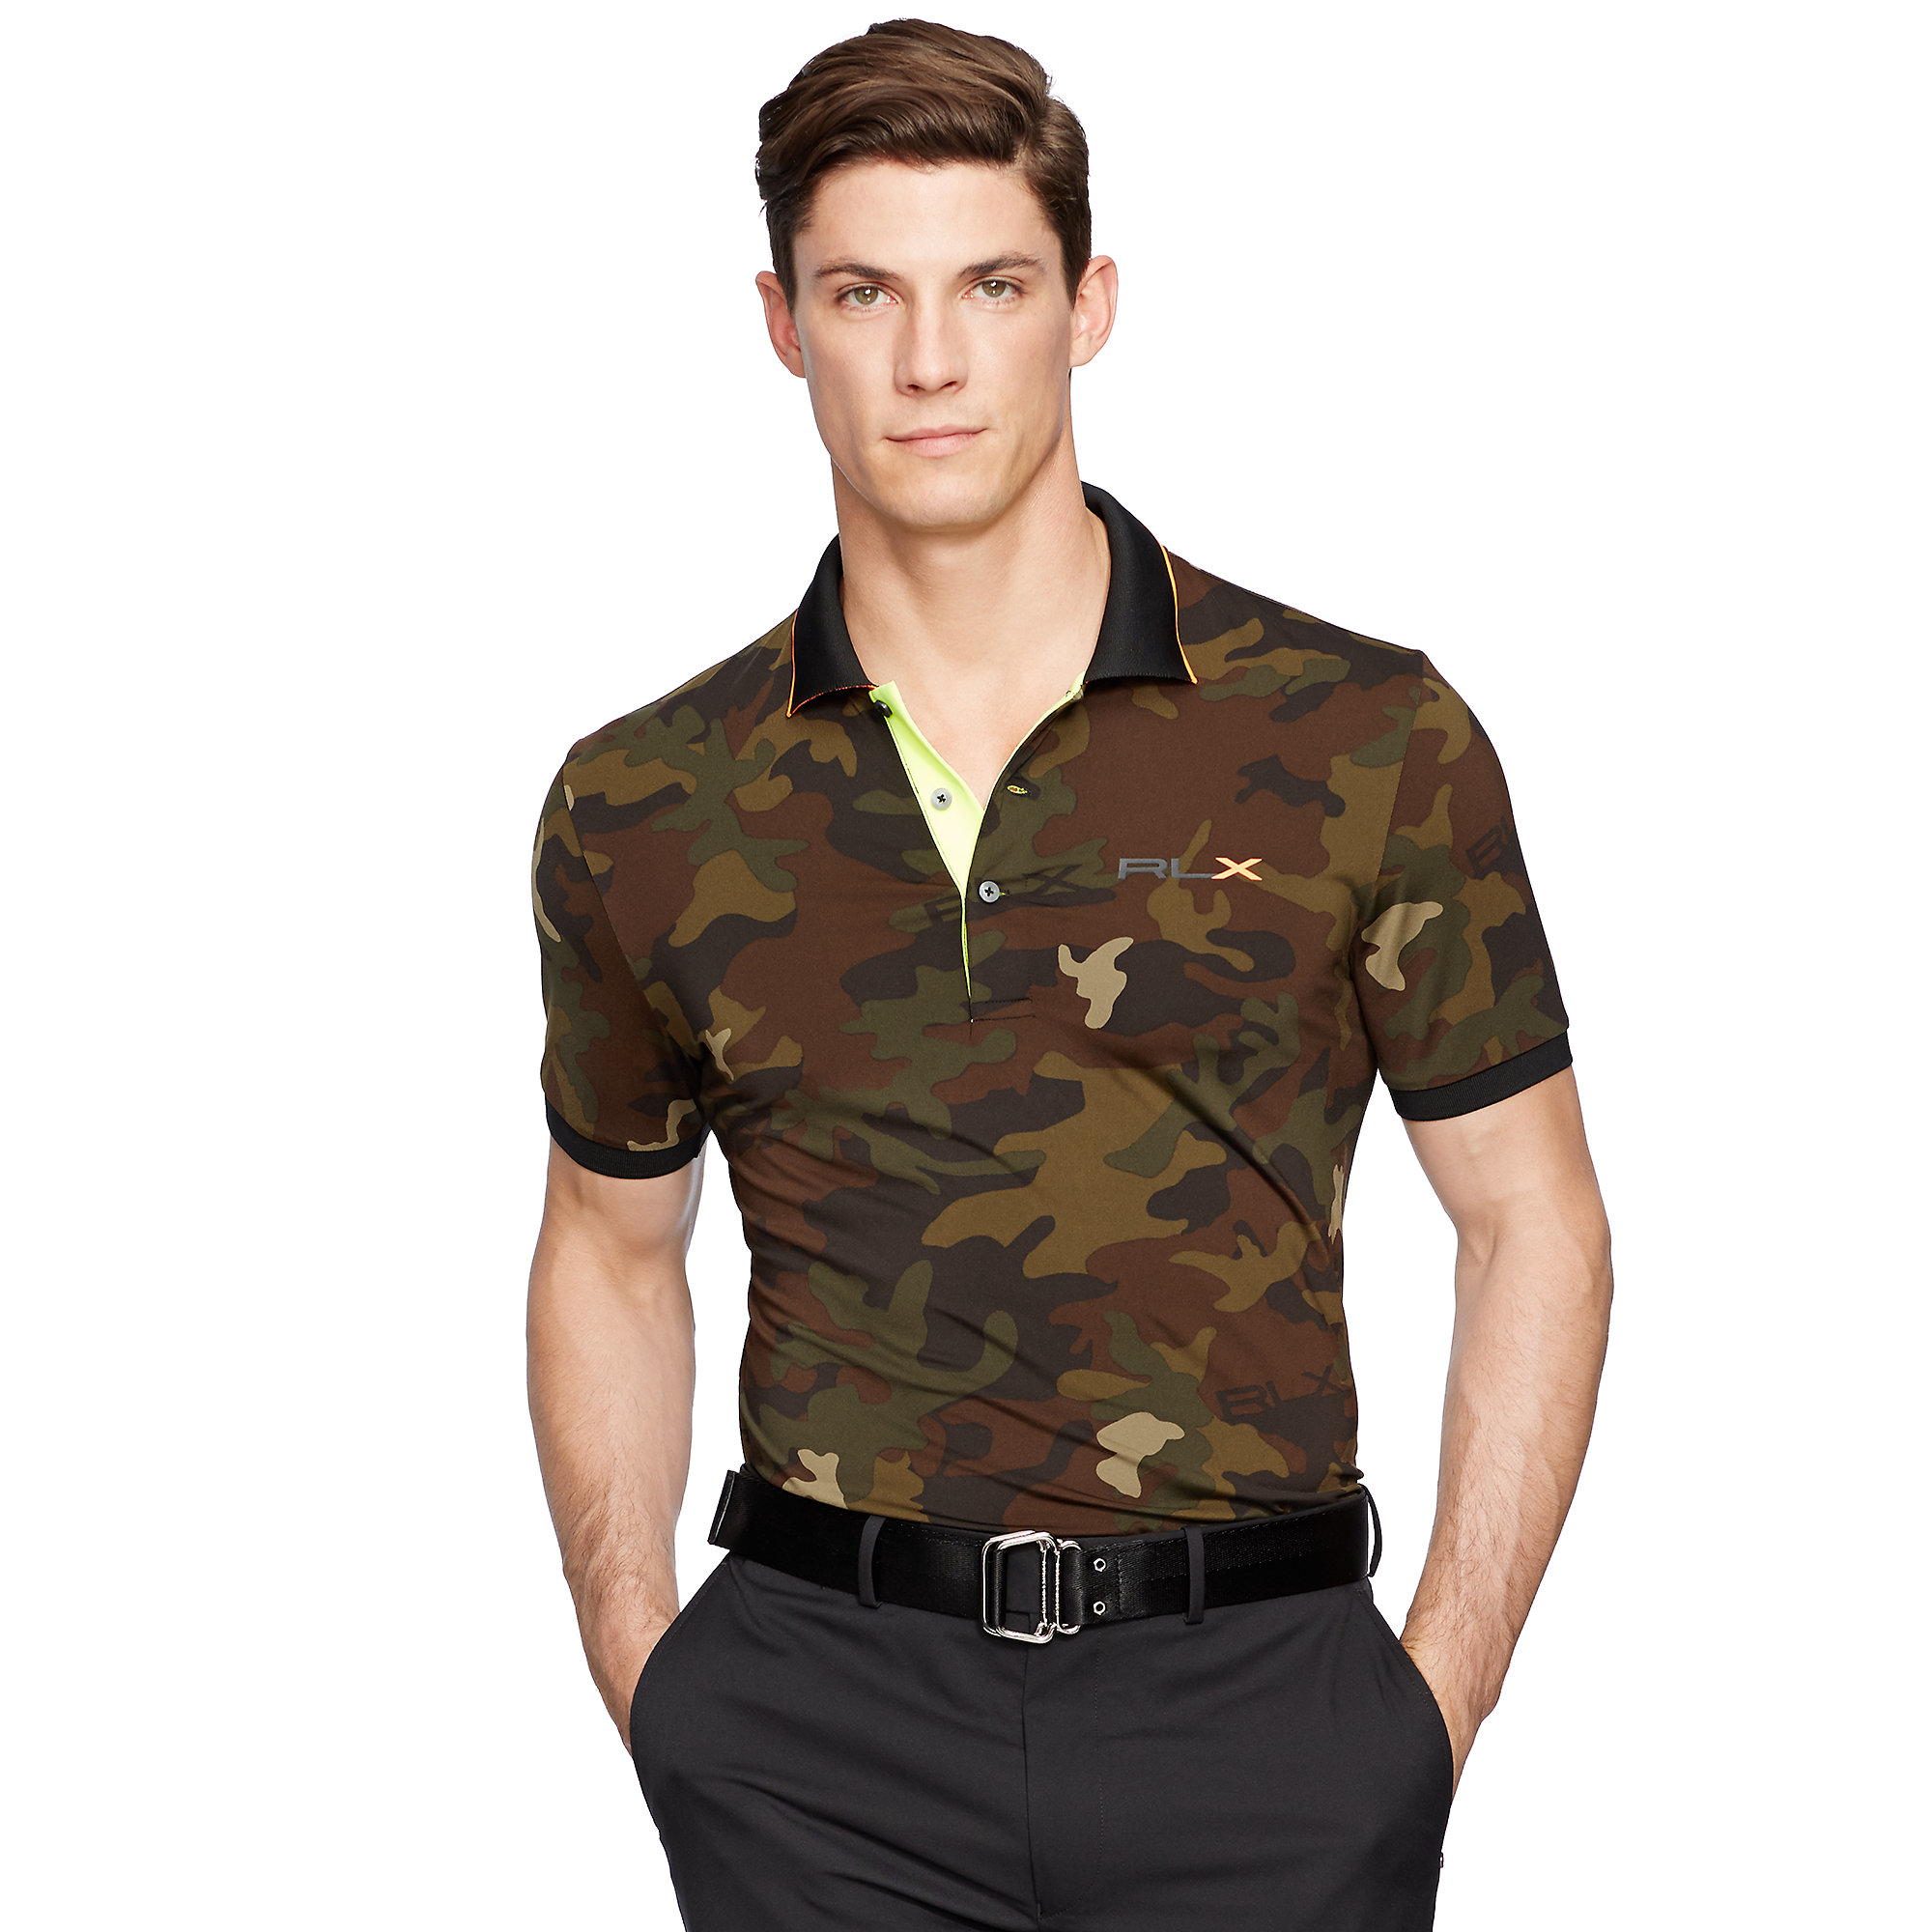 Ralph lauren tailored camo lightweight polo in green for for Camo polo shirts for men